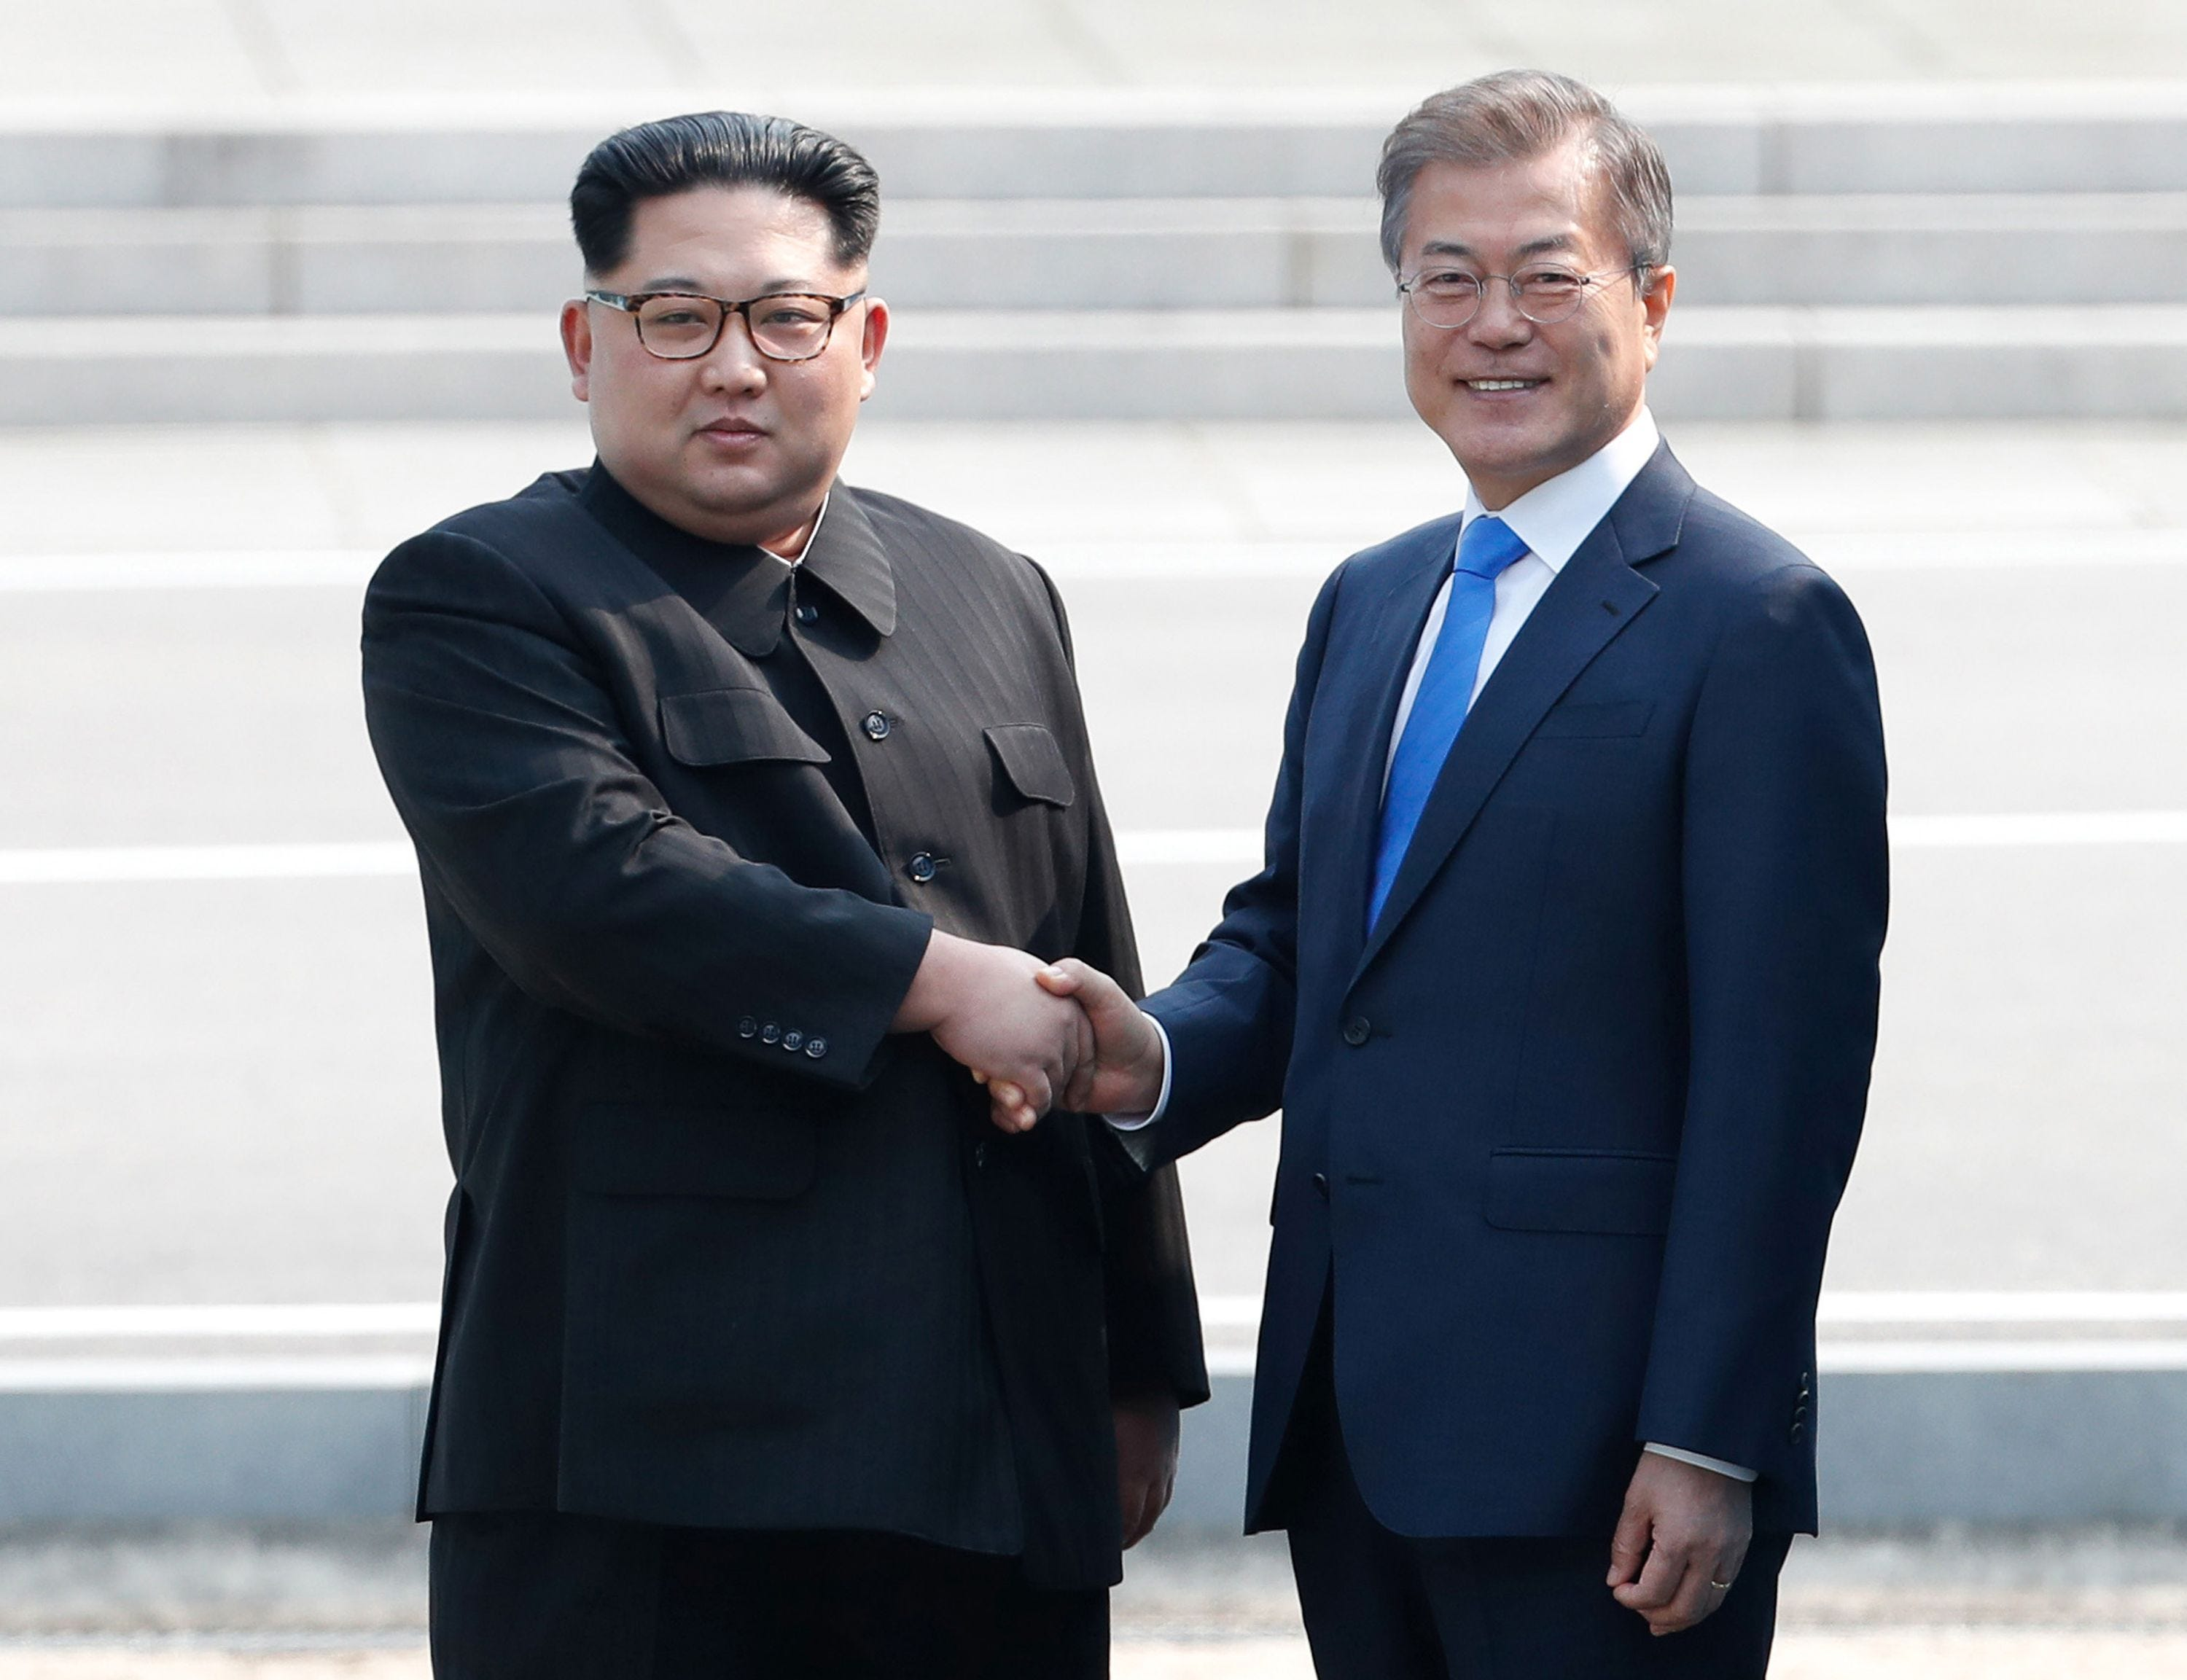 North Korean leader Kim Jong Un and South's President Moon Jae-in to meet in Pyongyang in September